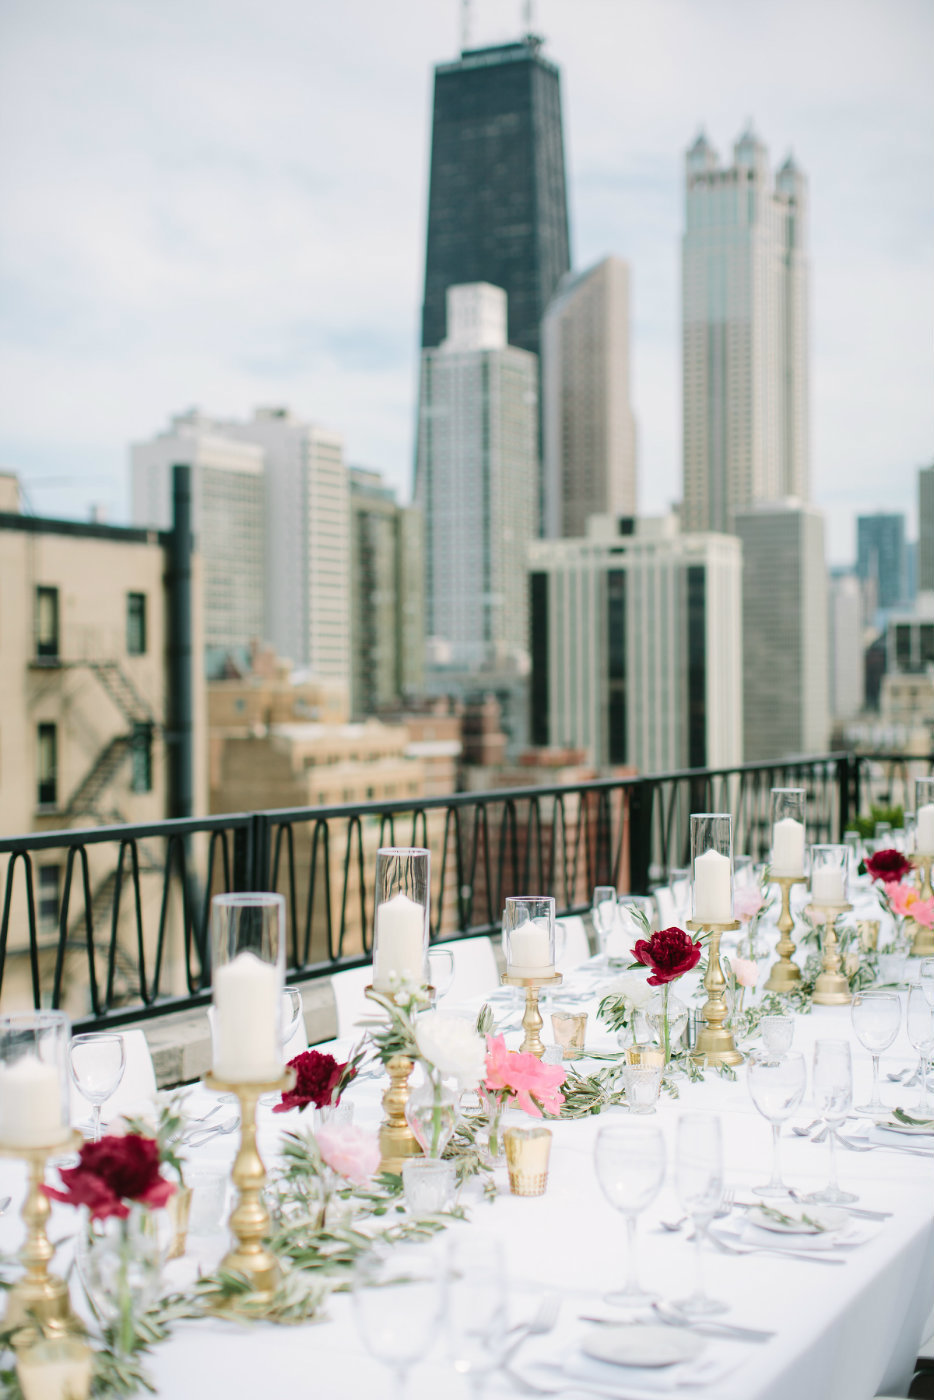 life_in_bloom_chicago_wedding_florist_and_event_designer_public_hotel_7